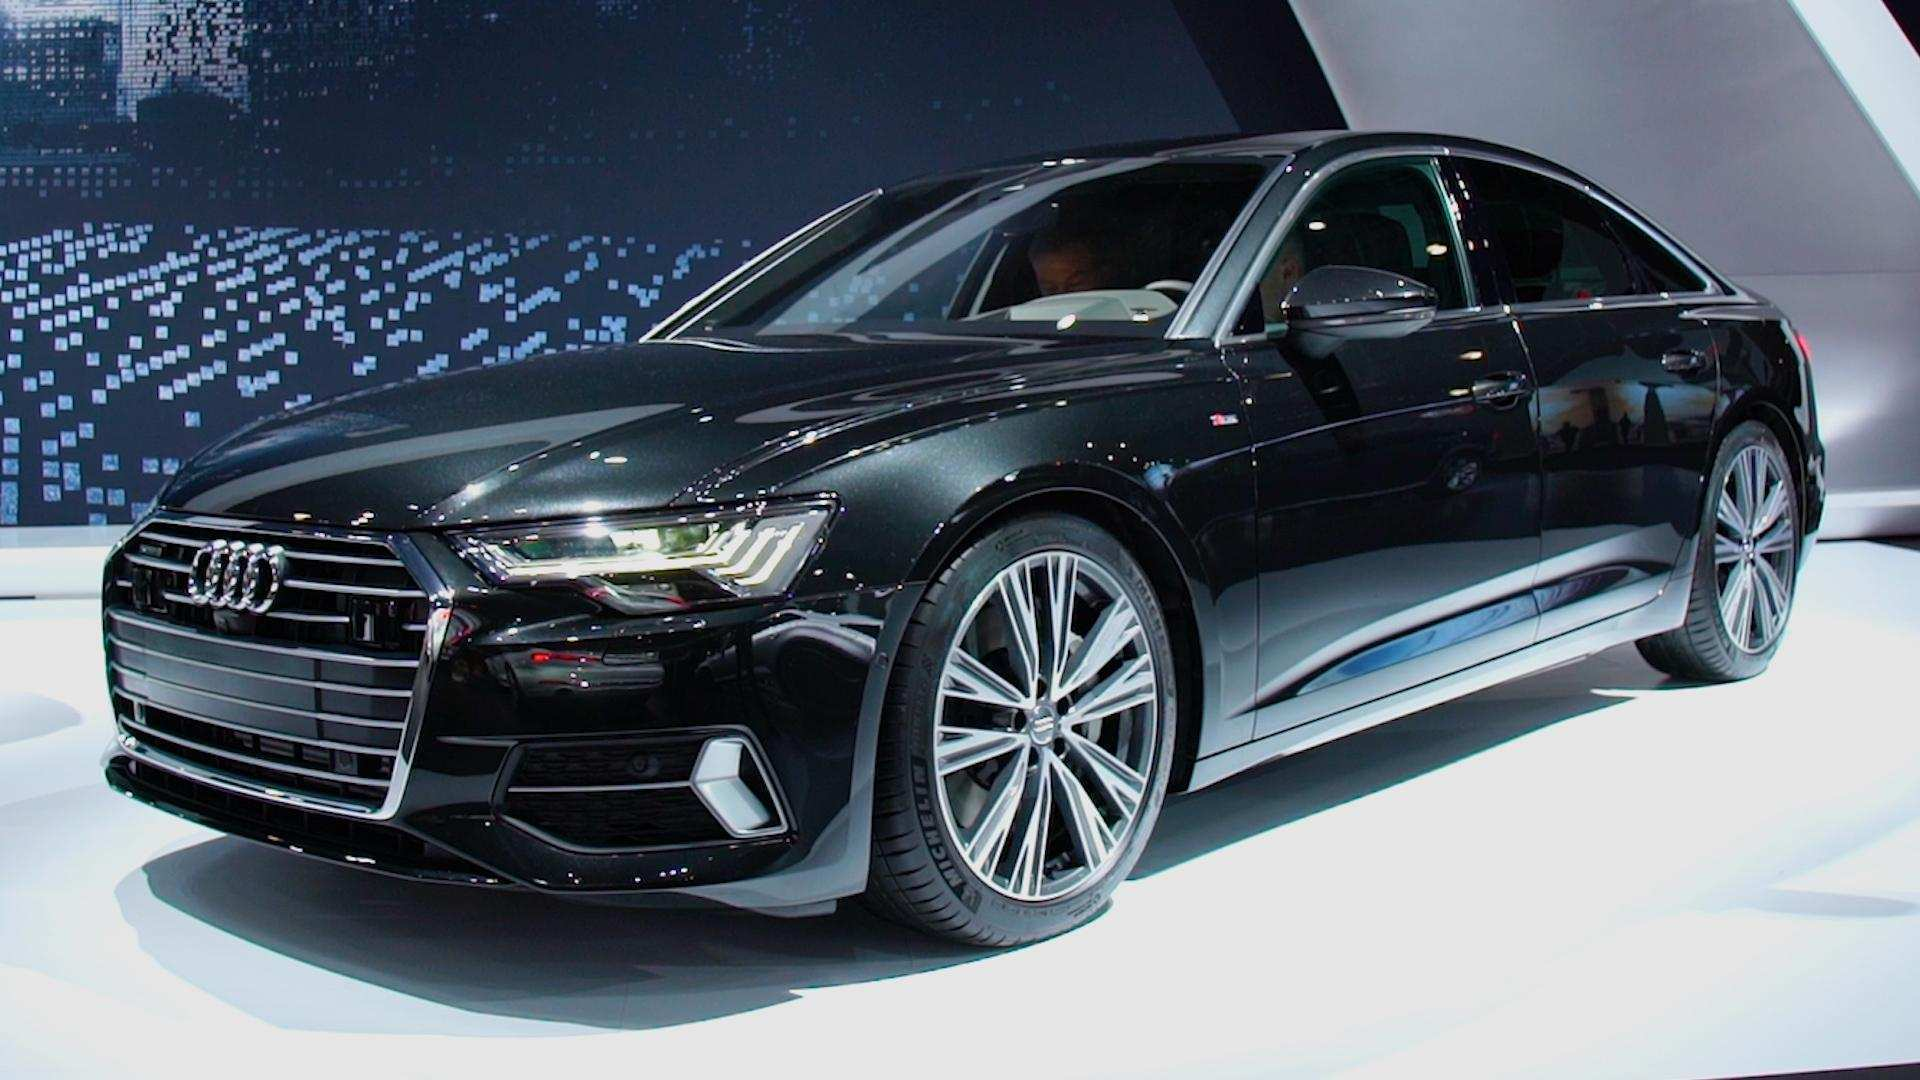 35 New 2019 Audi Dealer Order Guide Release Date with 2019 Audi Dealer Order Guide